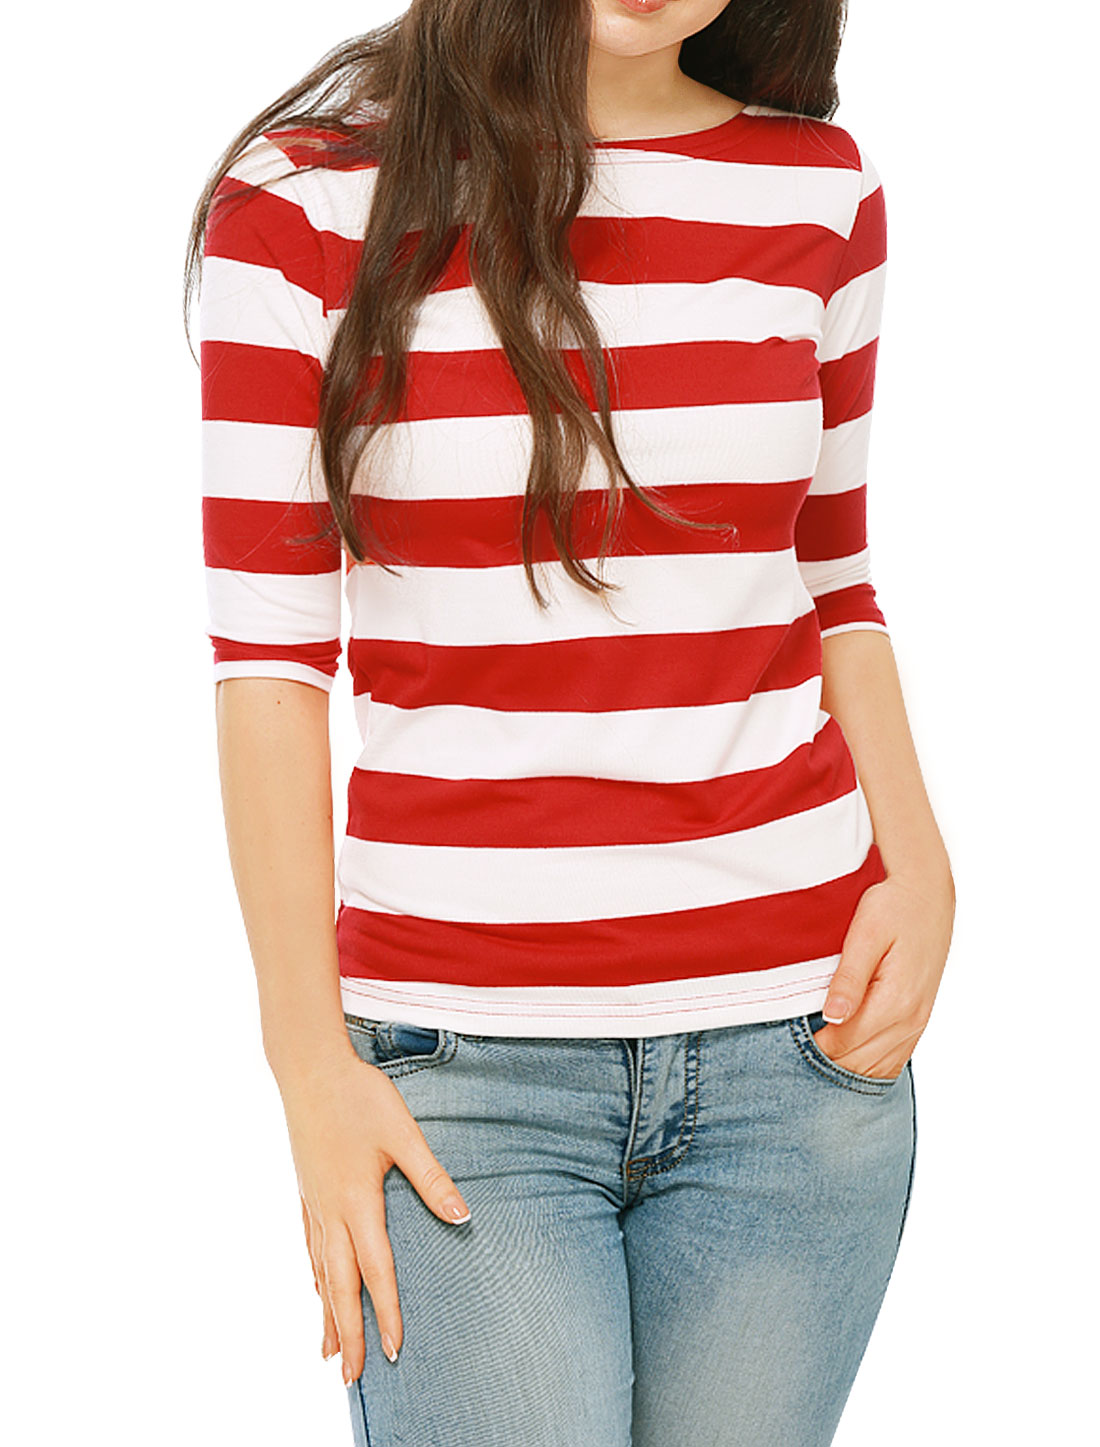 Women Elbow Sleeves Horizontal Striped Boxy Tee Red S